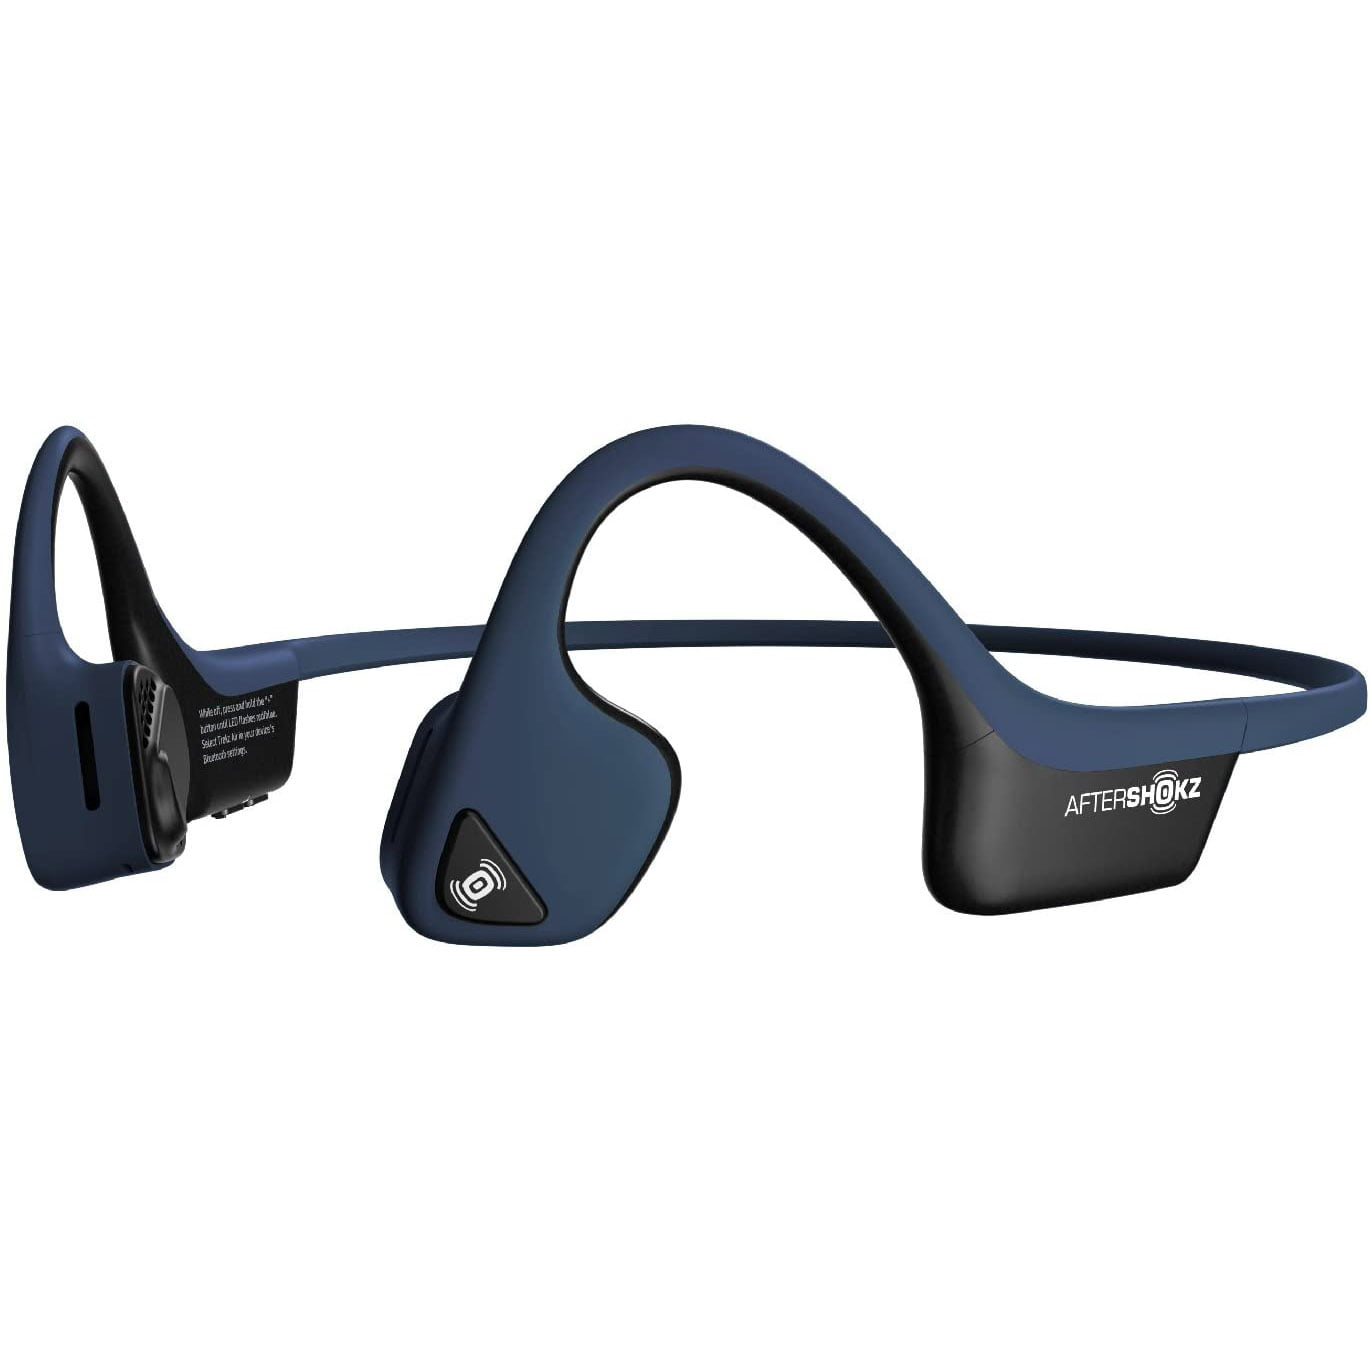 Casti Behind the Ear Aftershokz Trekz Air AS650, Conductie prin os, Wireless, Portable Case, IP55, Midnight Blue